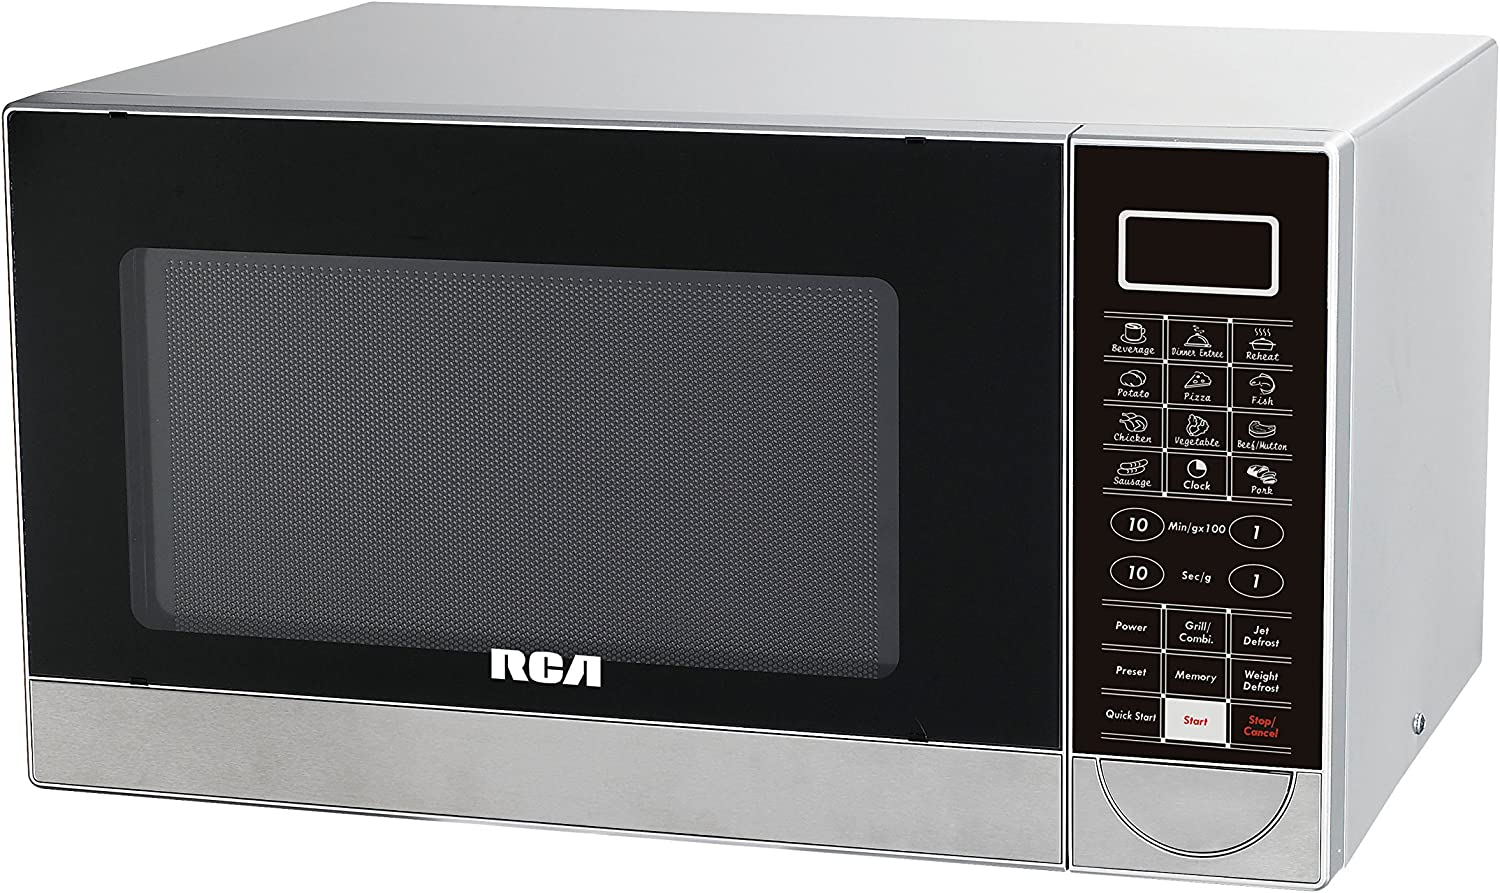 rca rmw1182 microwave and grill 1 1 cubic feet stainless steel